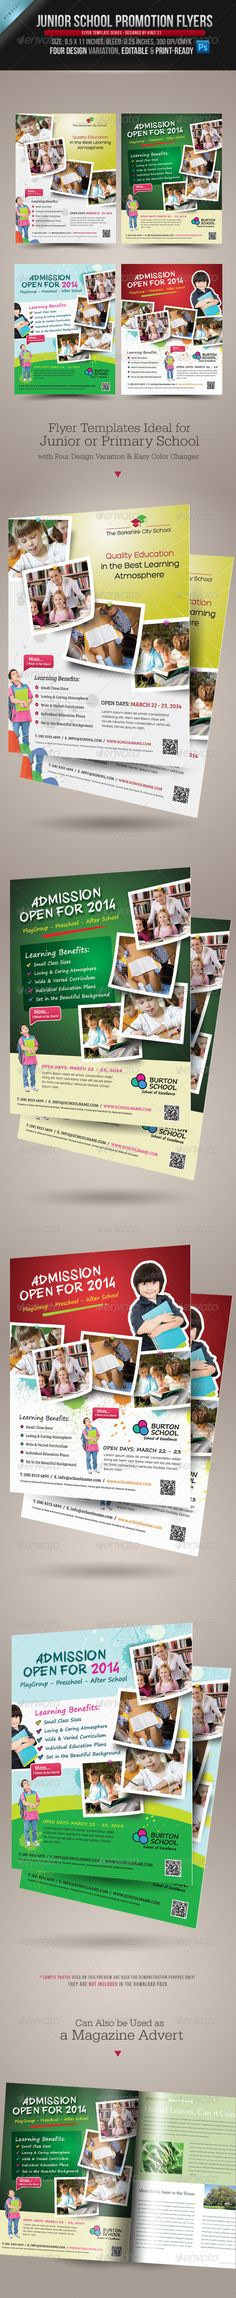 School Promotion Flyers - Corporate Flyers - -Junior School Promotion Flyers - Corporate Flyers - - 70 Killer Content Ideas To Post On Social Media - Marketing Solved Plakát Cirkus od OMM Des Brochure Design, Brochure Template, Flyer Template, Flyer Design, Back To School Night, First Day Of School, Pre School, Corporate Flyer, Business Flyer